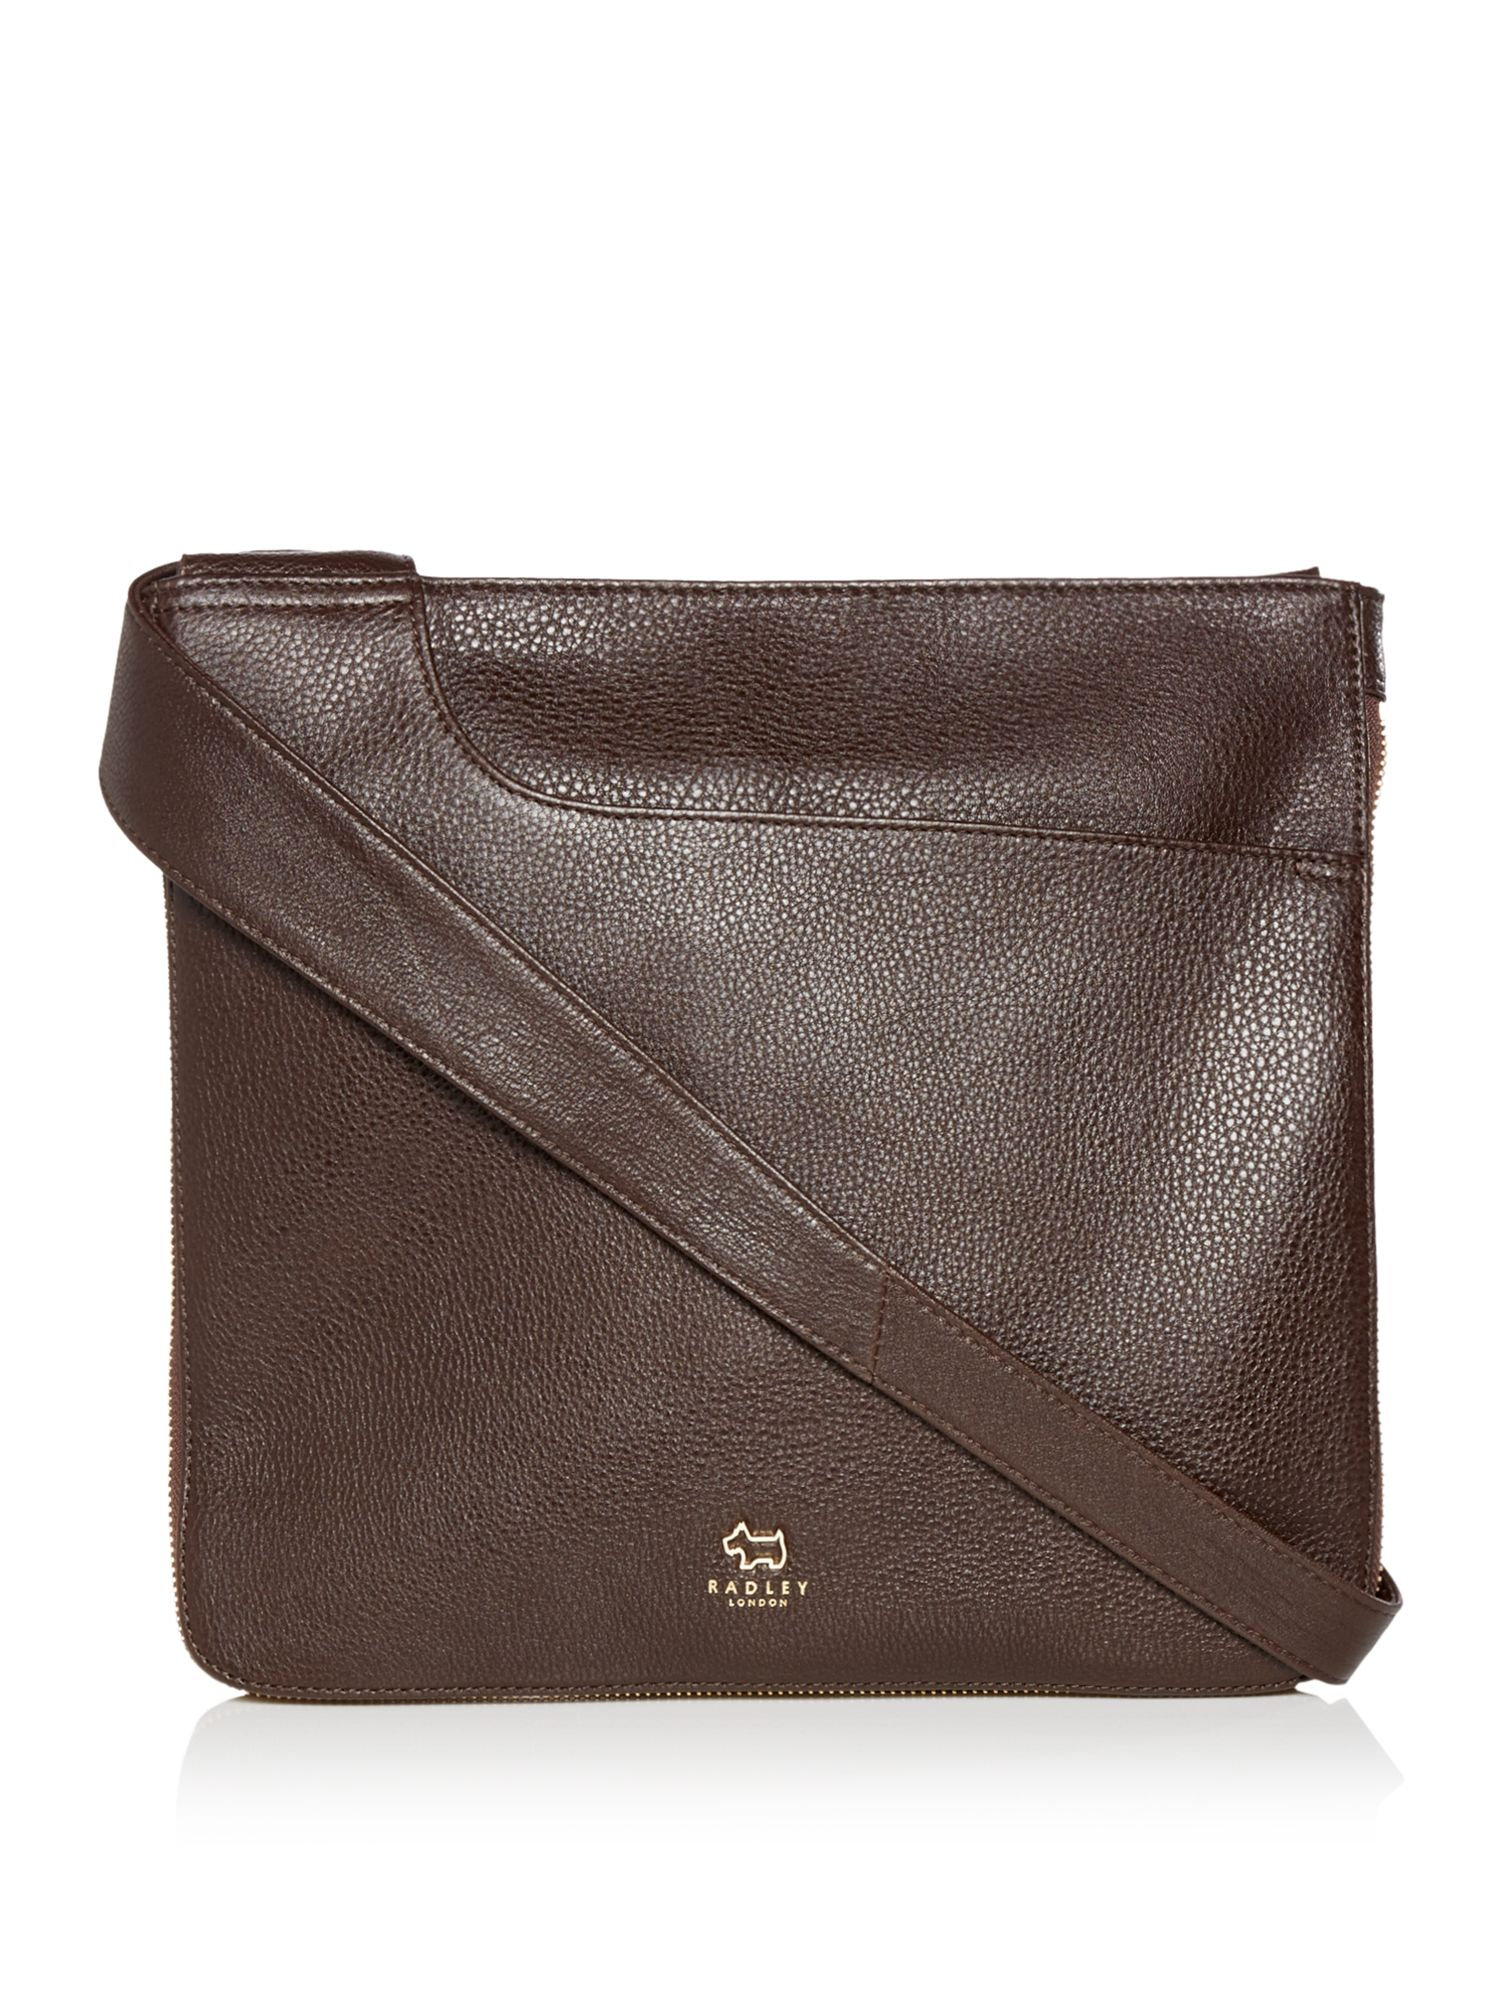 Radley Pocket bag large zip cross body bag Brown